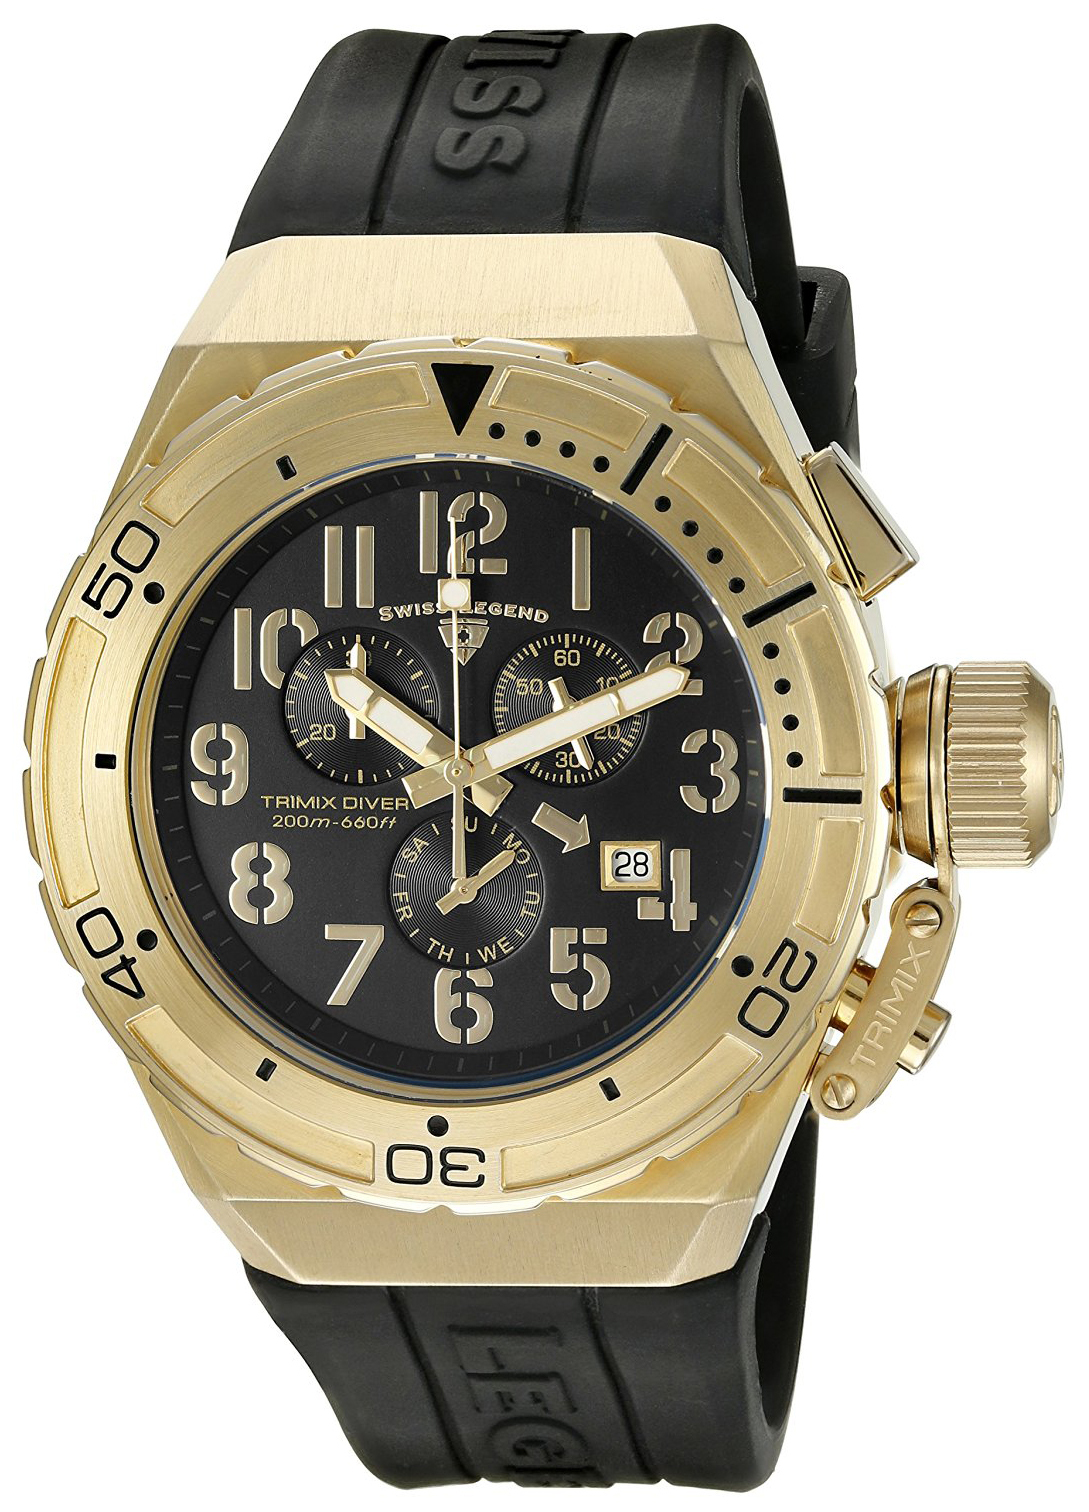 Swiss Legend 99999 Herrklocka SL-13842-YG-01 Svart/Gummi Ø46 mm - Swiss Legend